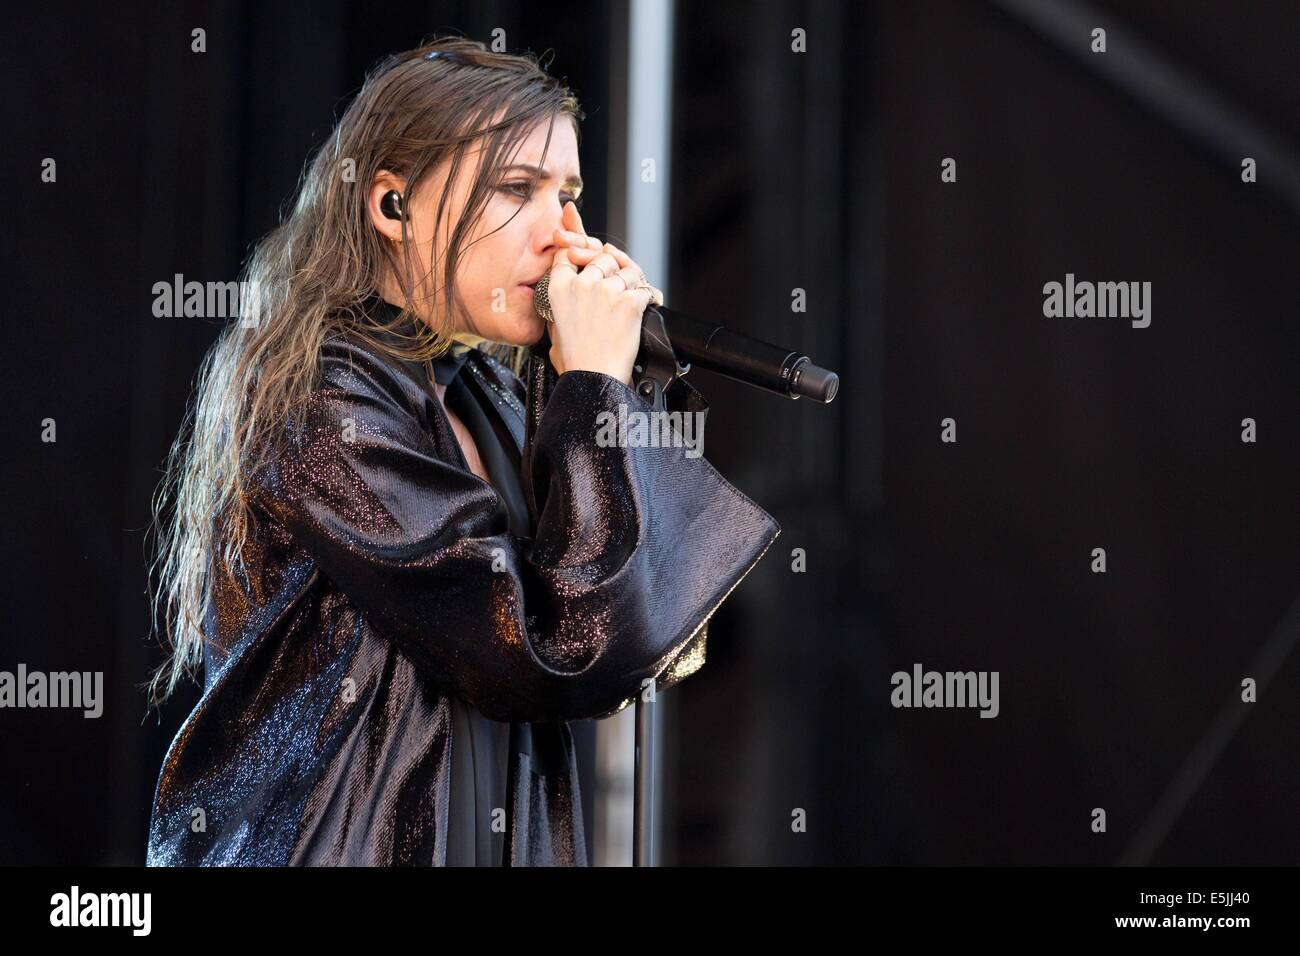 Chicago, Illinois, USA. 1st Aug, 2014. Vocalist LYKKE LI performs live at the 2014 Lollapalooza Music Festival in - Stock Image